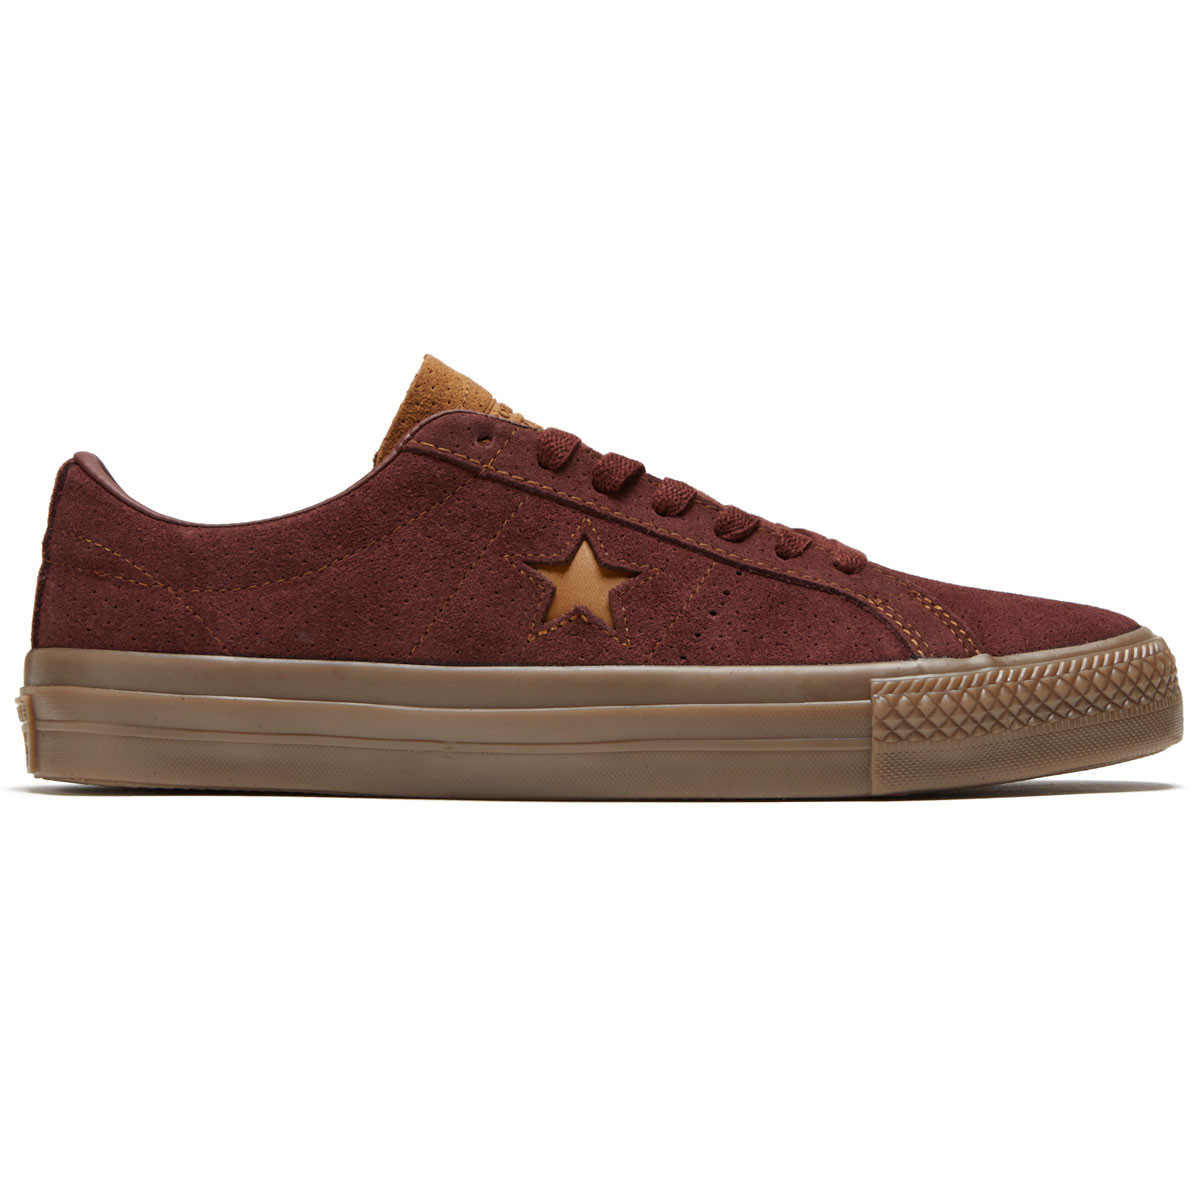 83255aab1d1ca6 Converse One Star Pro Ox Shoes - Barkroot Brown/Ale Brown/Brown